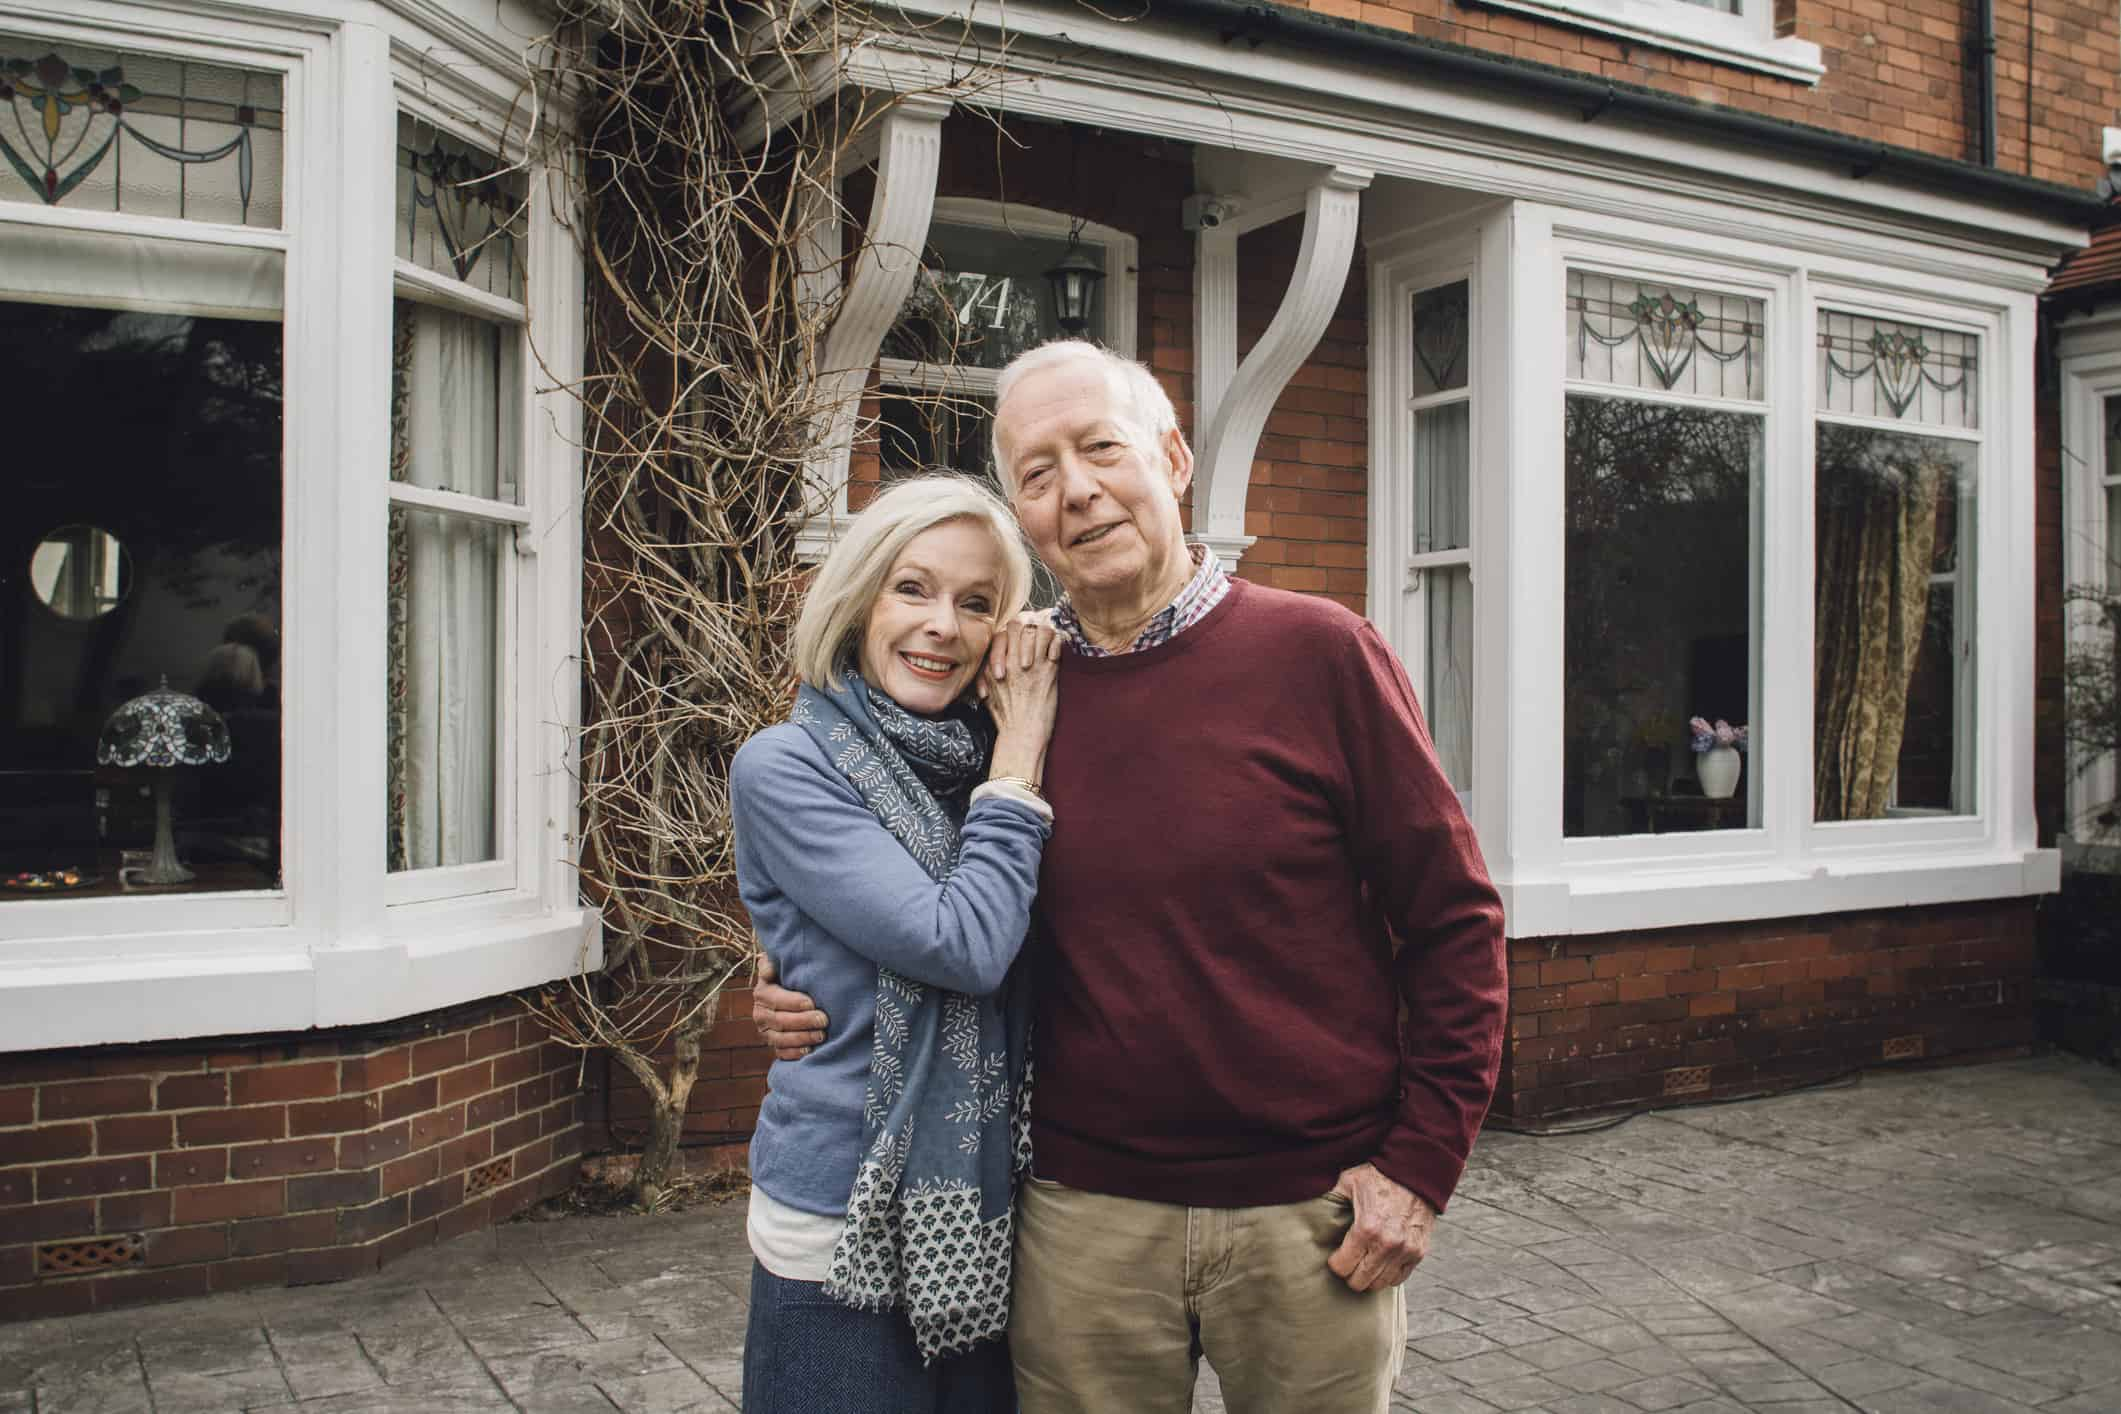 Senior couple are smiling for the camera while standing in front of their newly bought home.